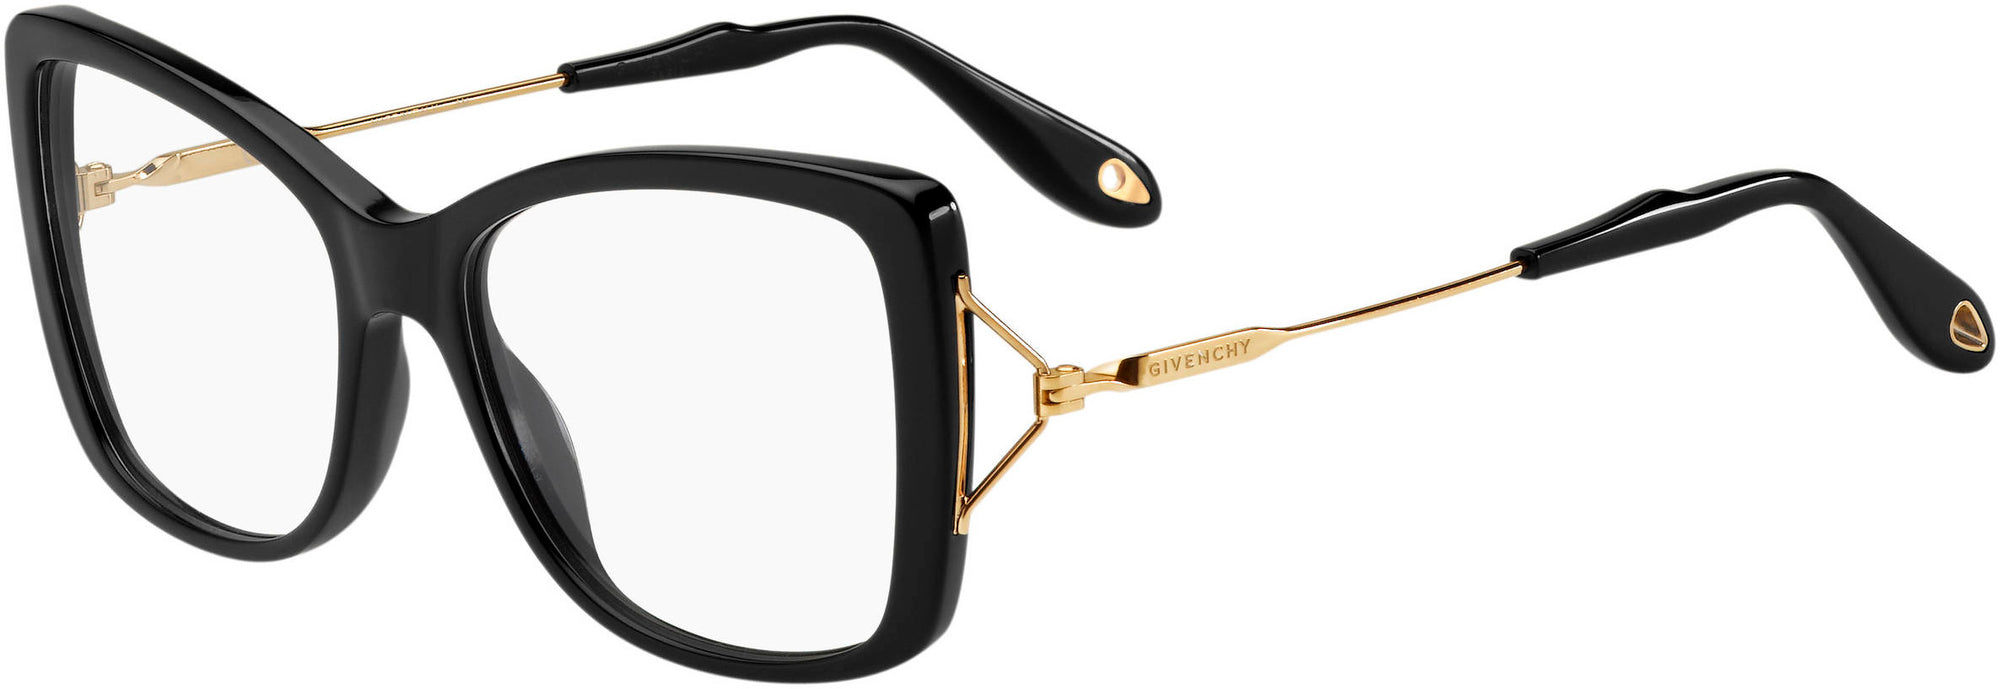 Givenchy GV 0028 Rectangular Eyeglasses 0ANW-0ANW  Black Gold (00 Demo Lens)